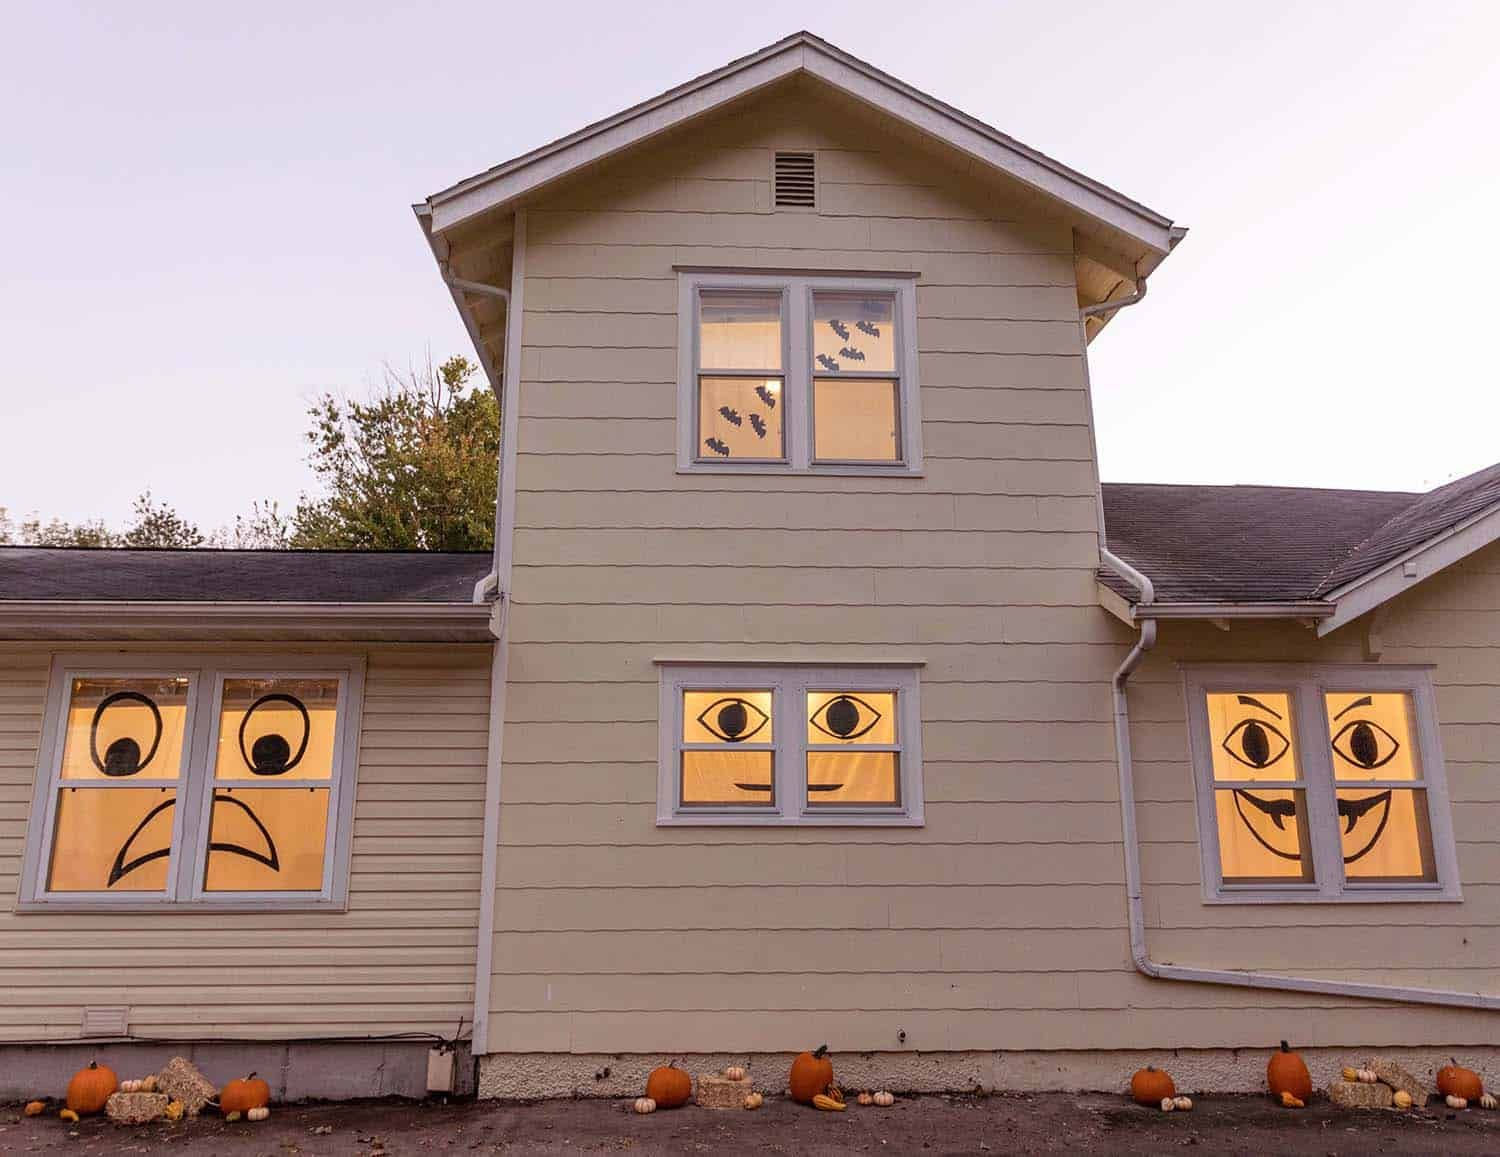 A house with black silhouettes in the window